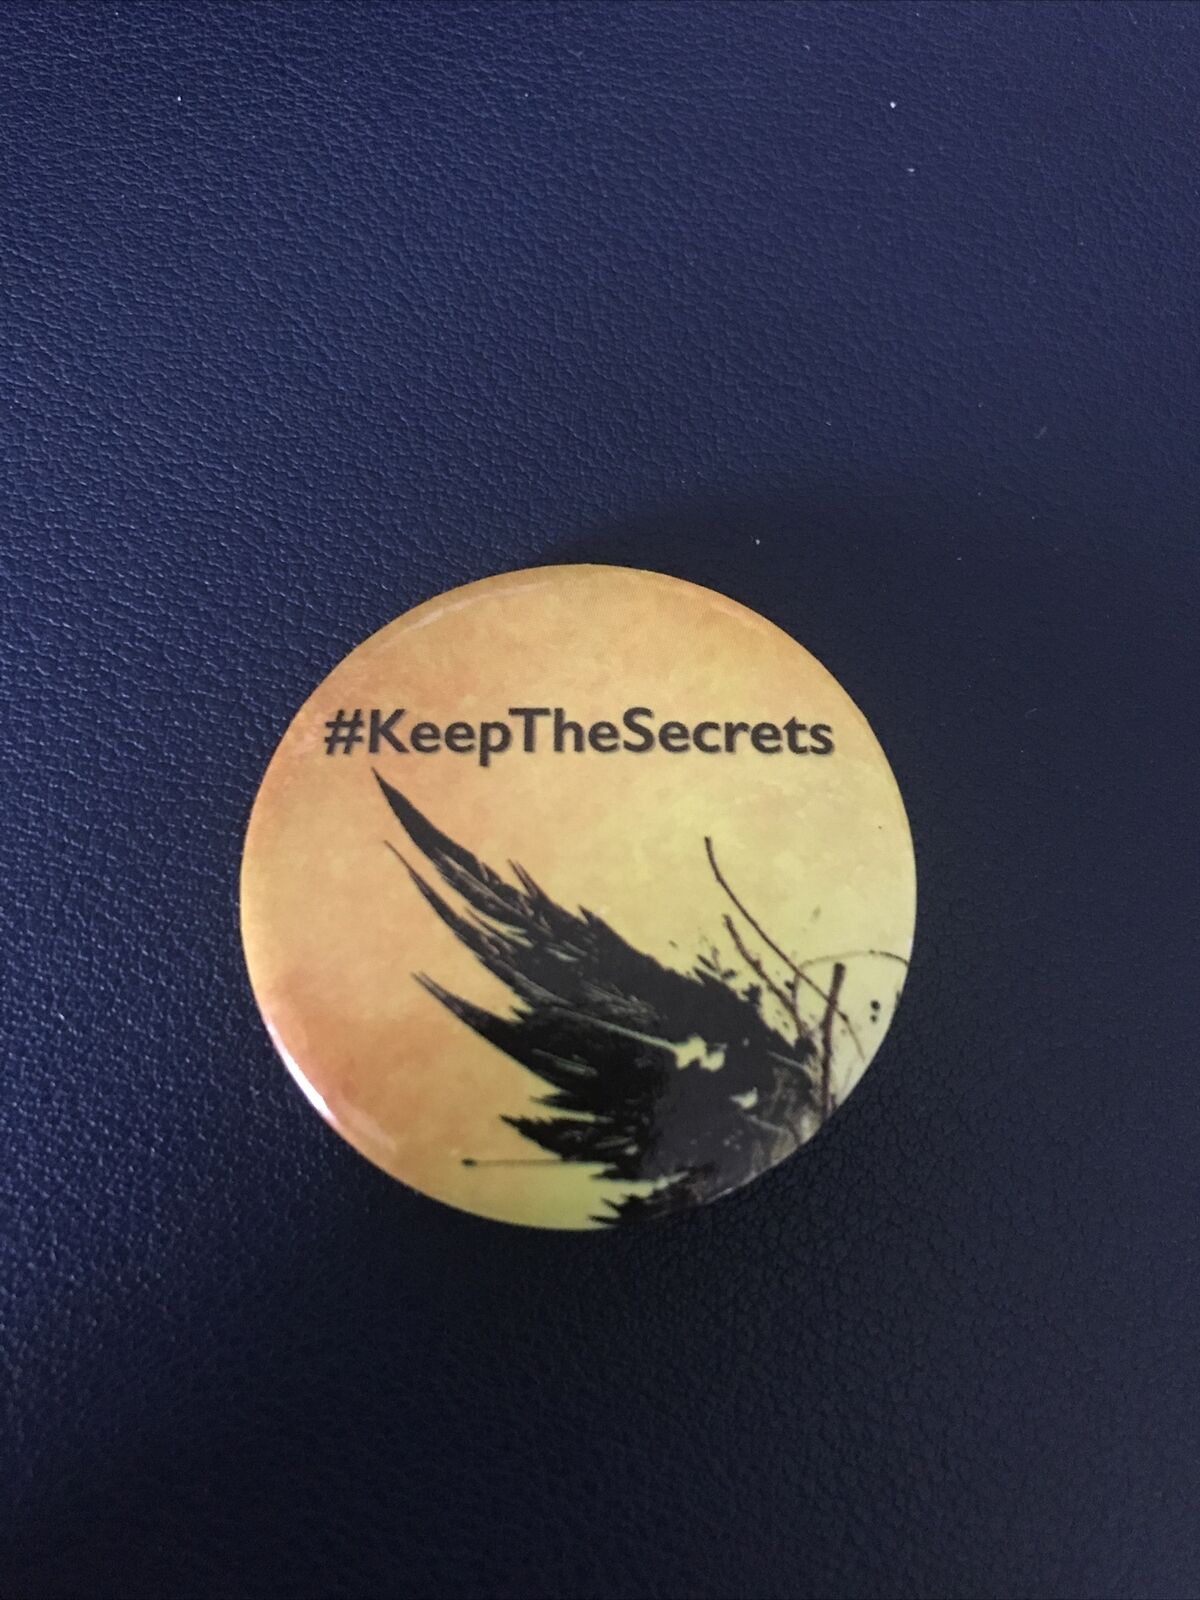 Harry Potter And The Cursed Child #KeepTheSecrets Pin Badge